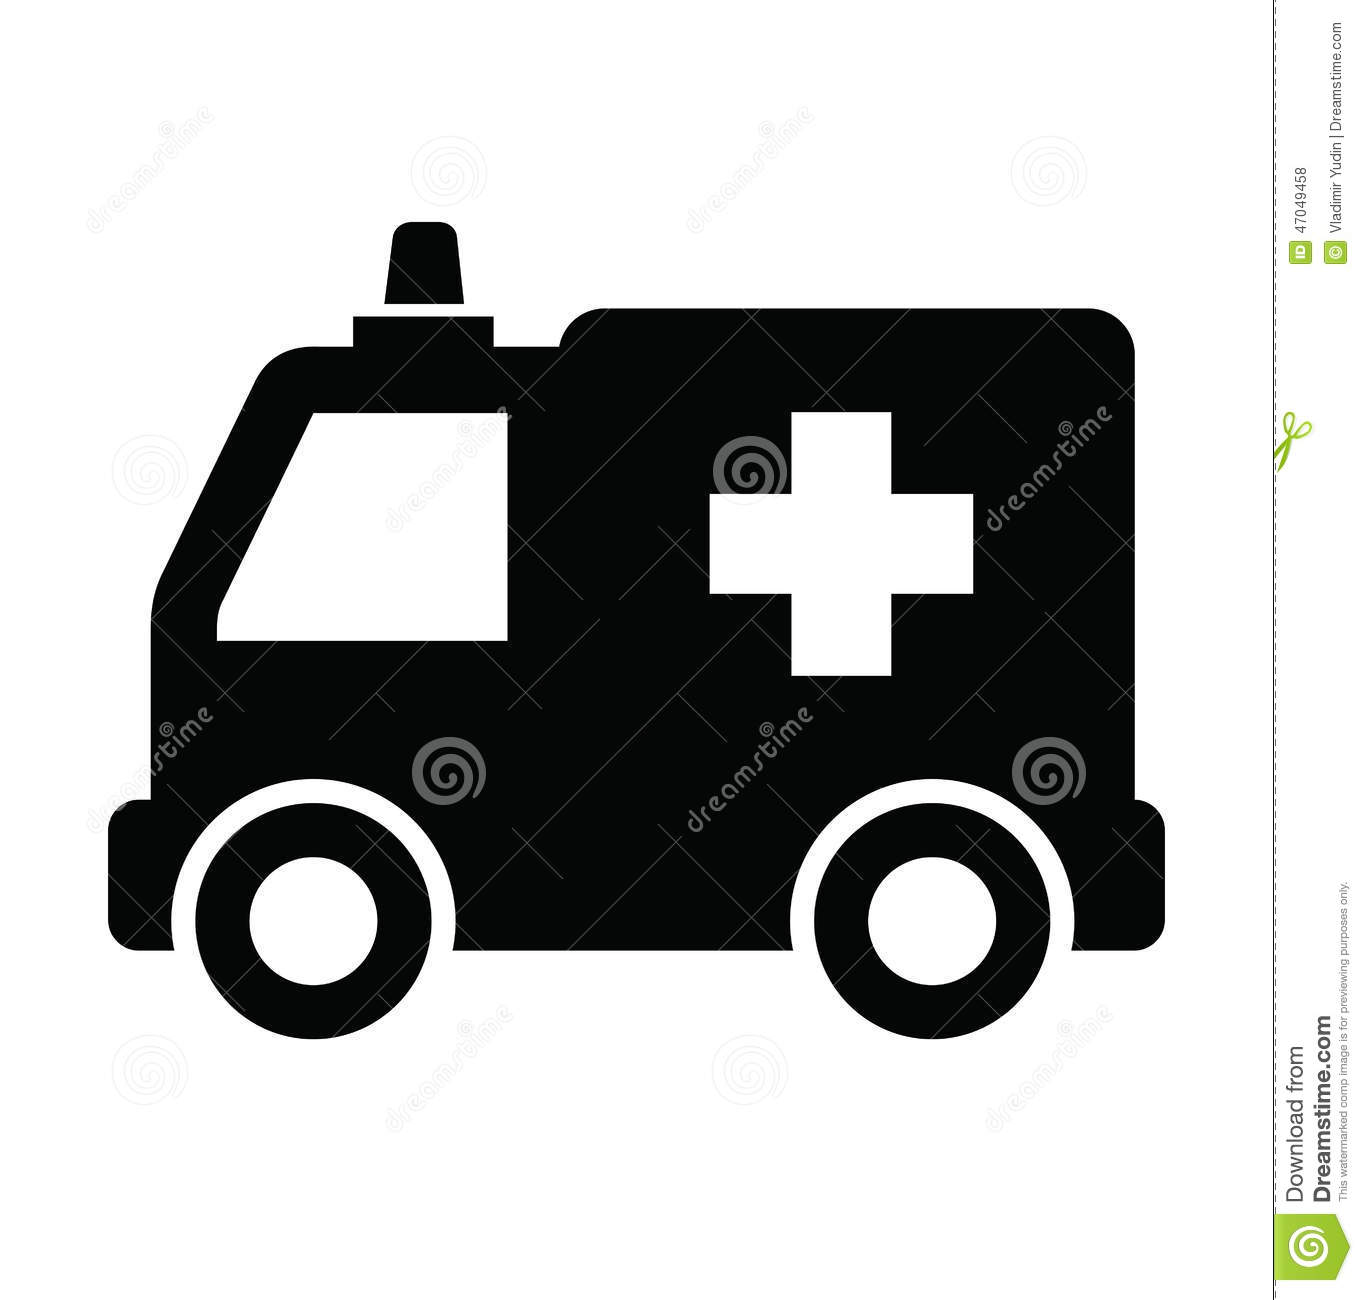 1363x1300 Ambulance Clipart, Suggestions For Ambulance Clipart, Download